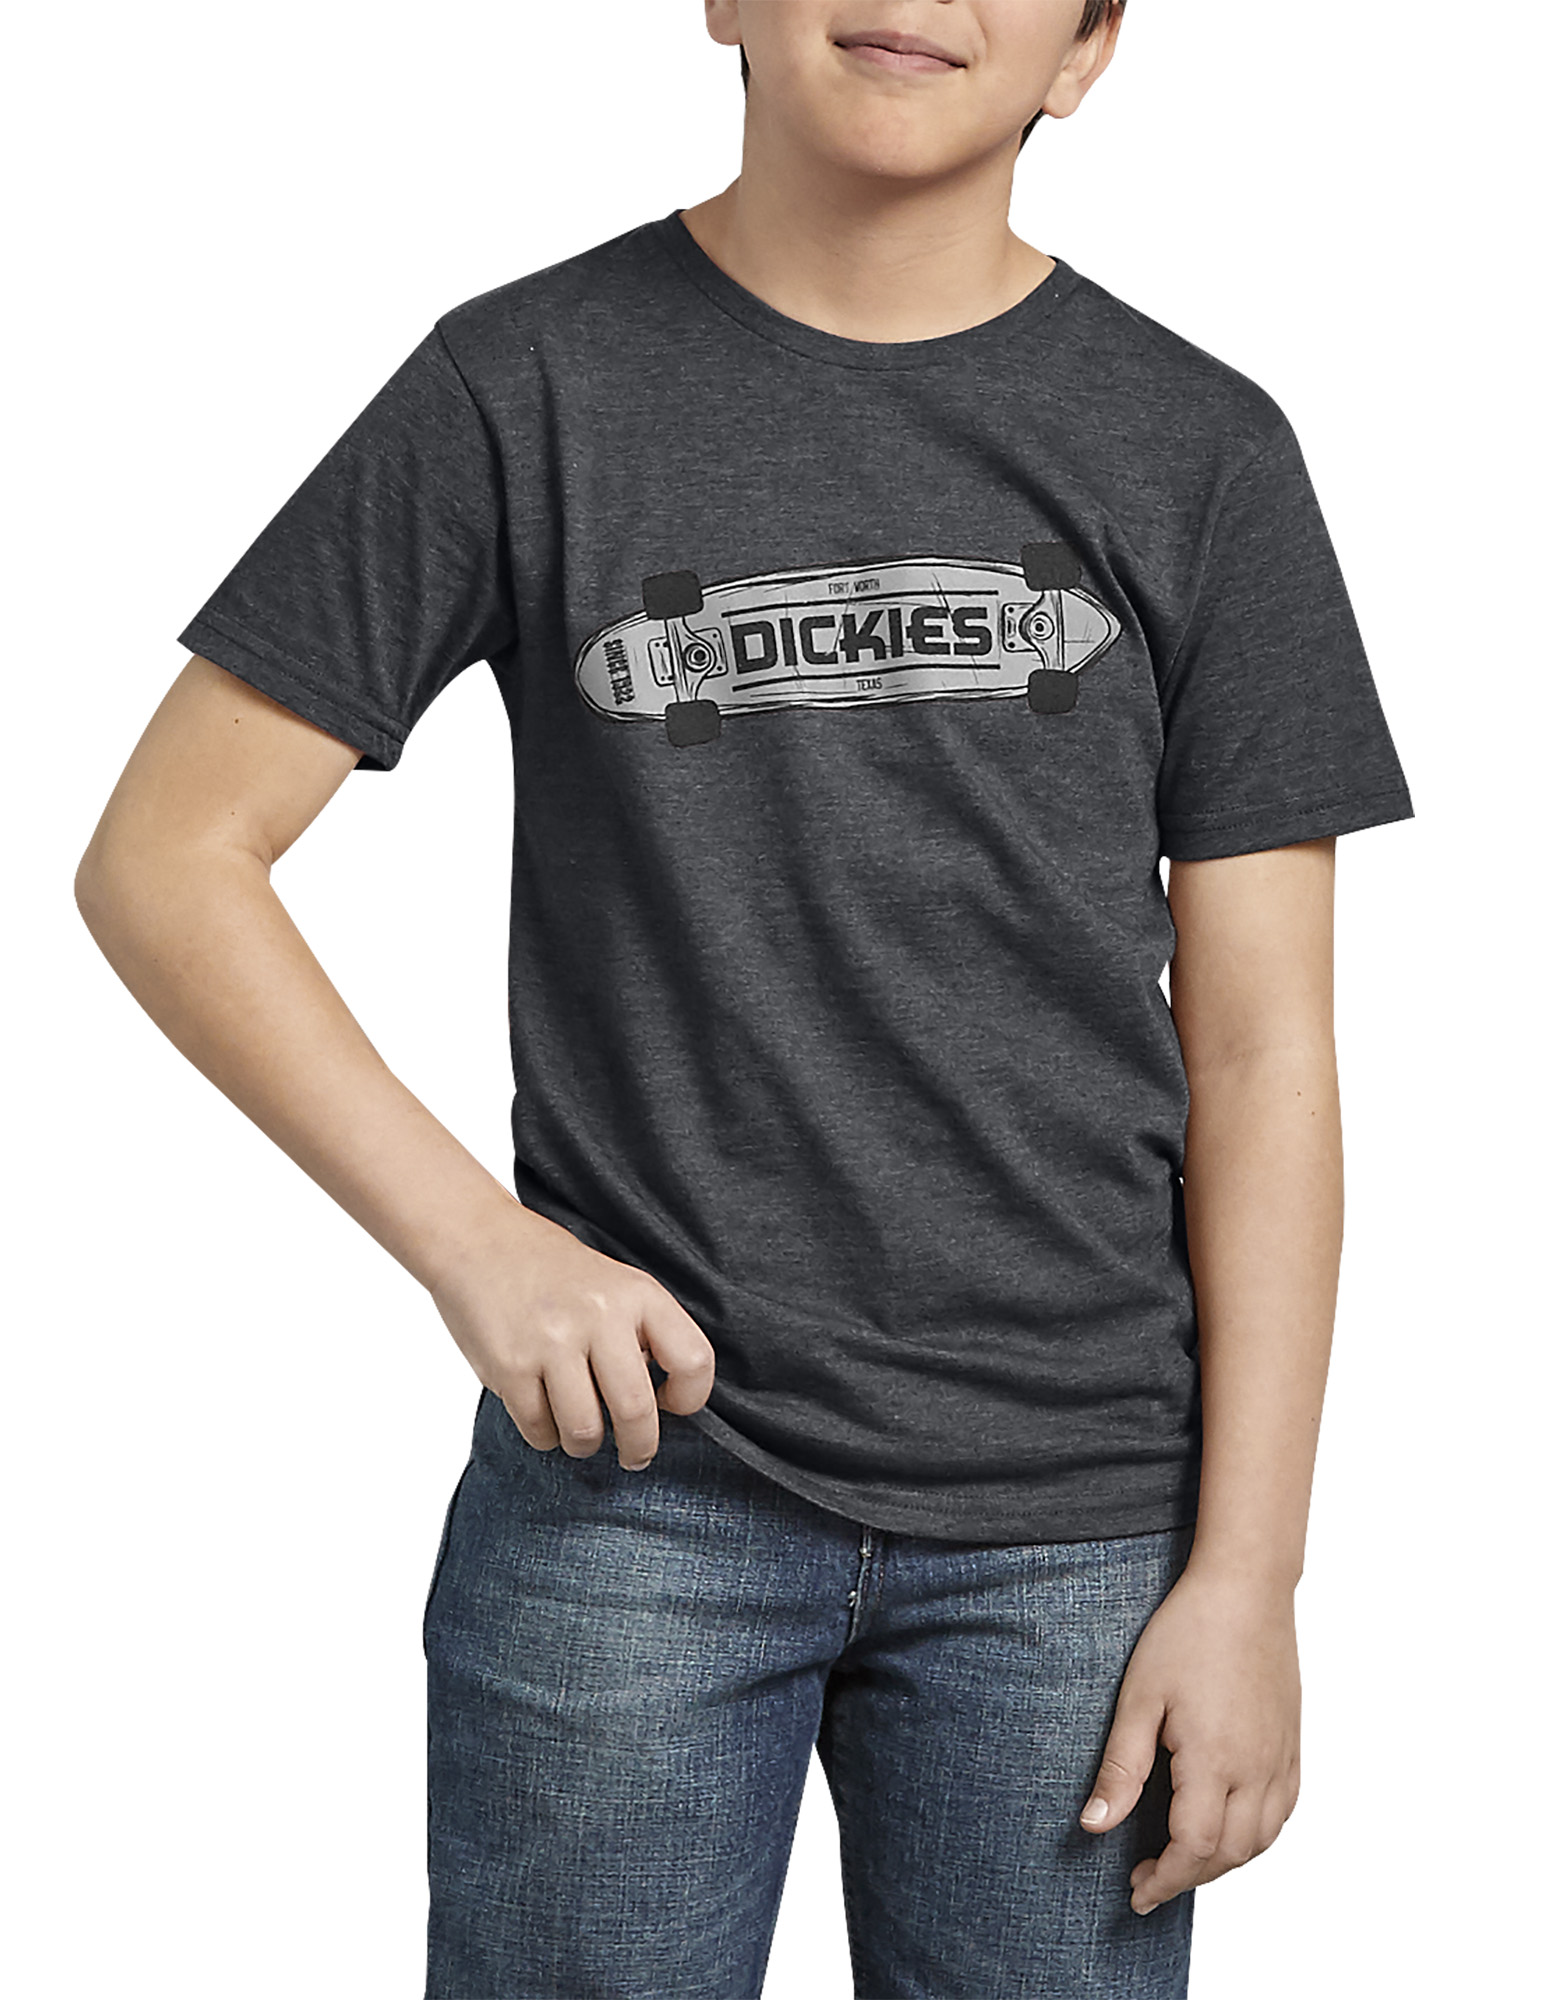 Kids Dickies Skateboard Graphic T-Shirt - Charcoal Gray (ACH)